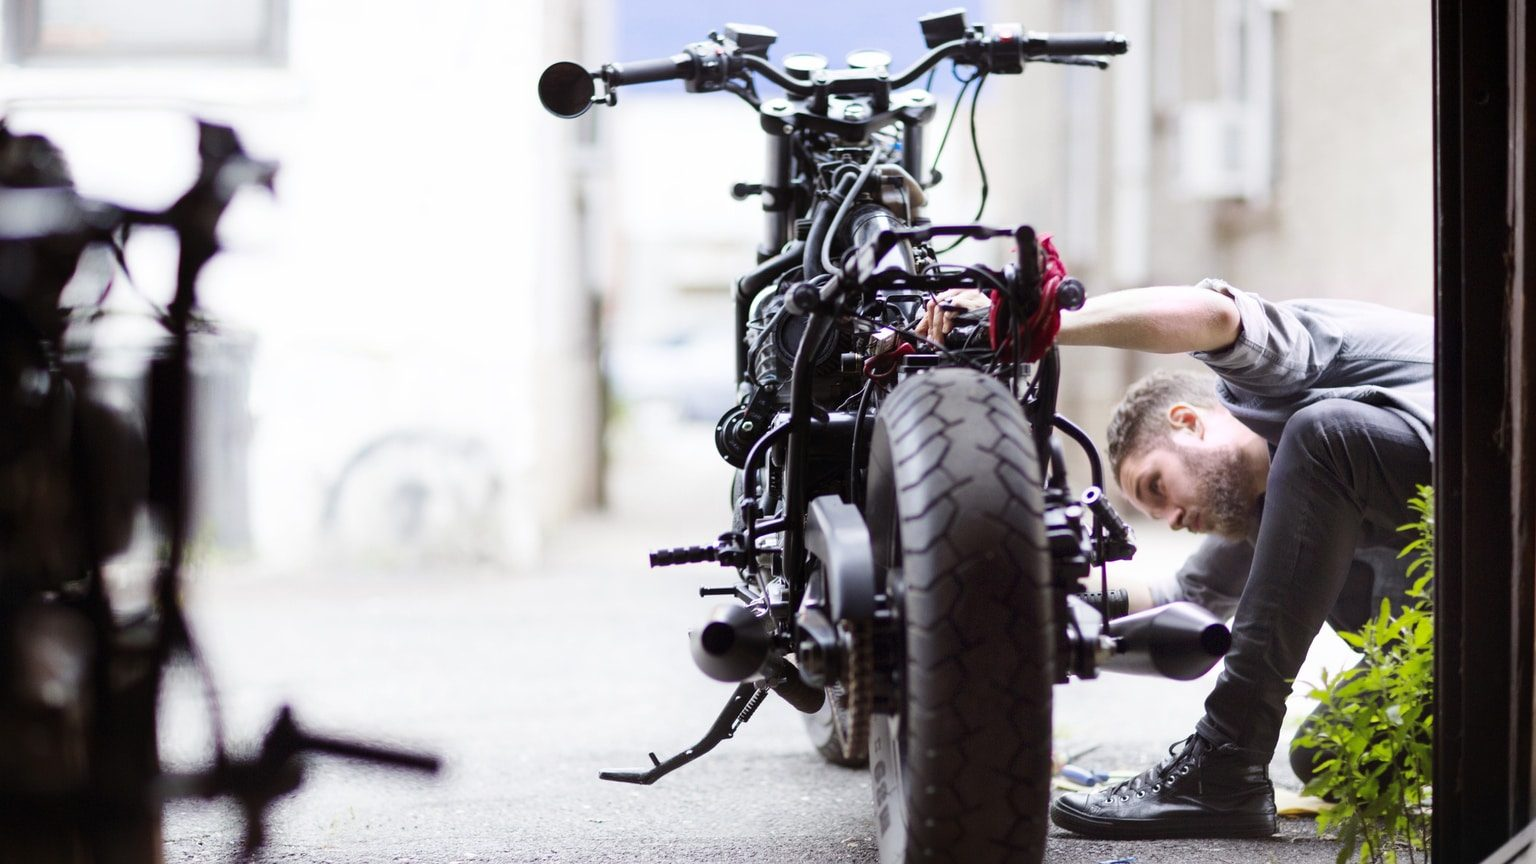 Man Fixing Motorcycle In Garage